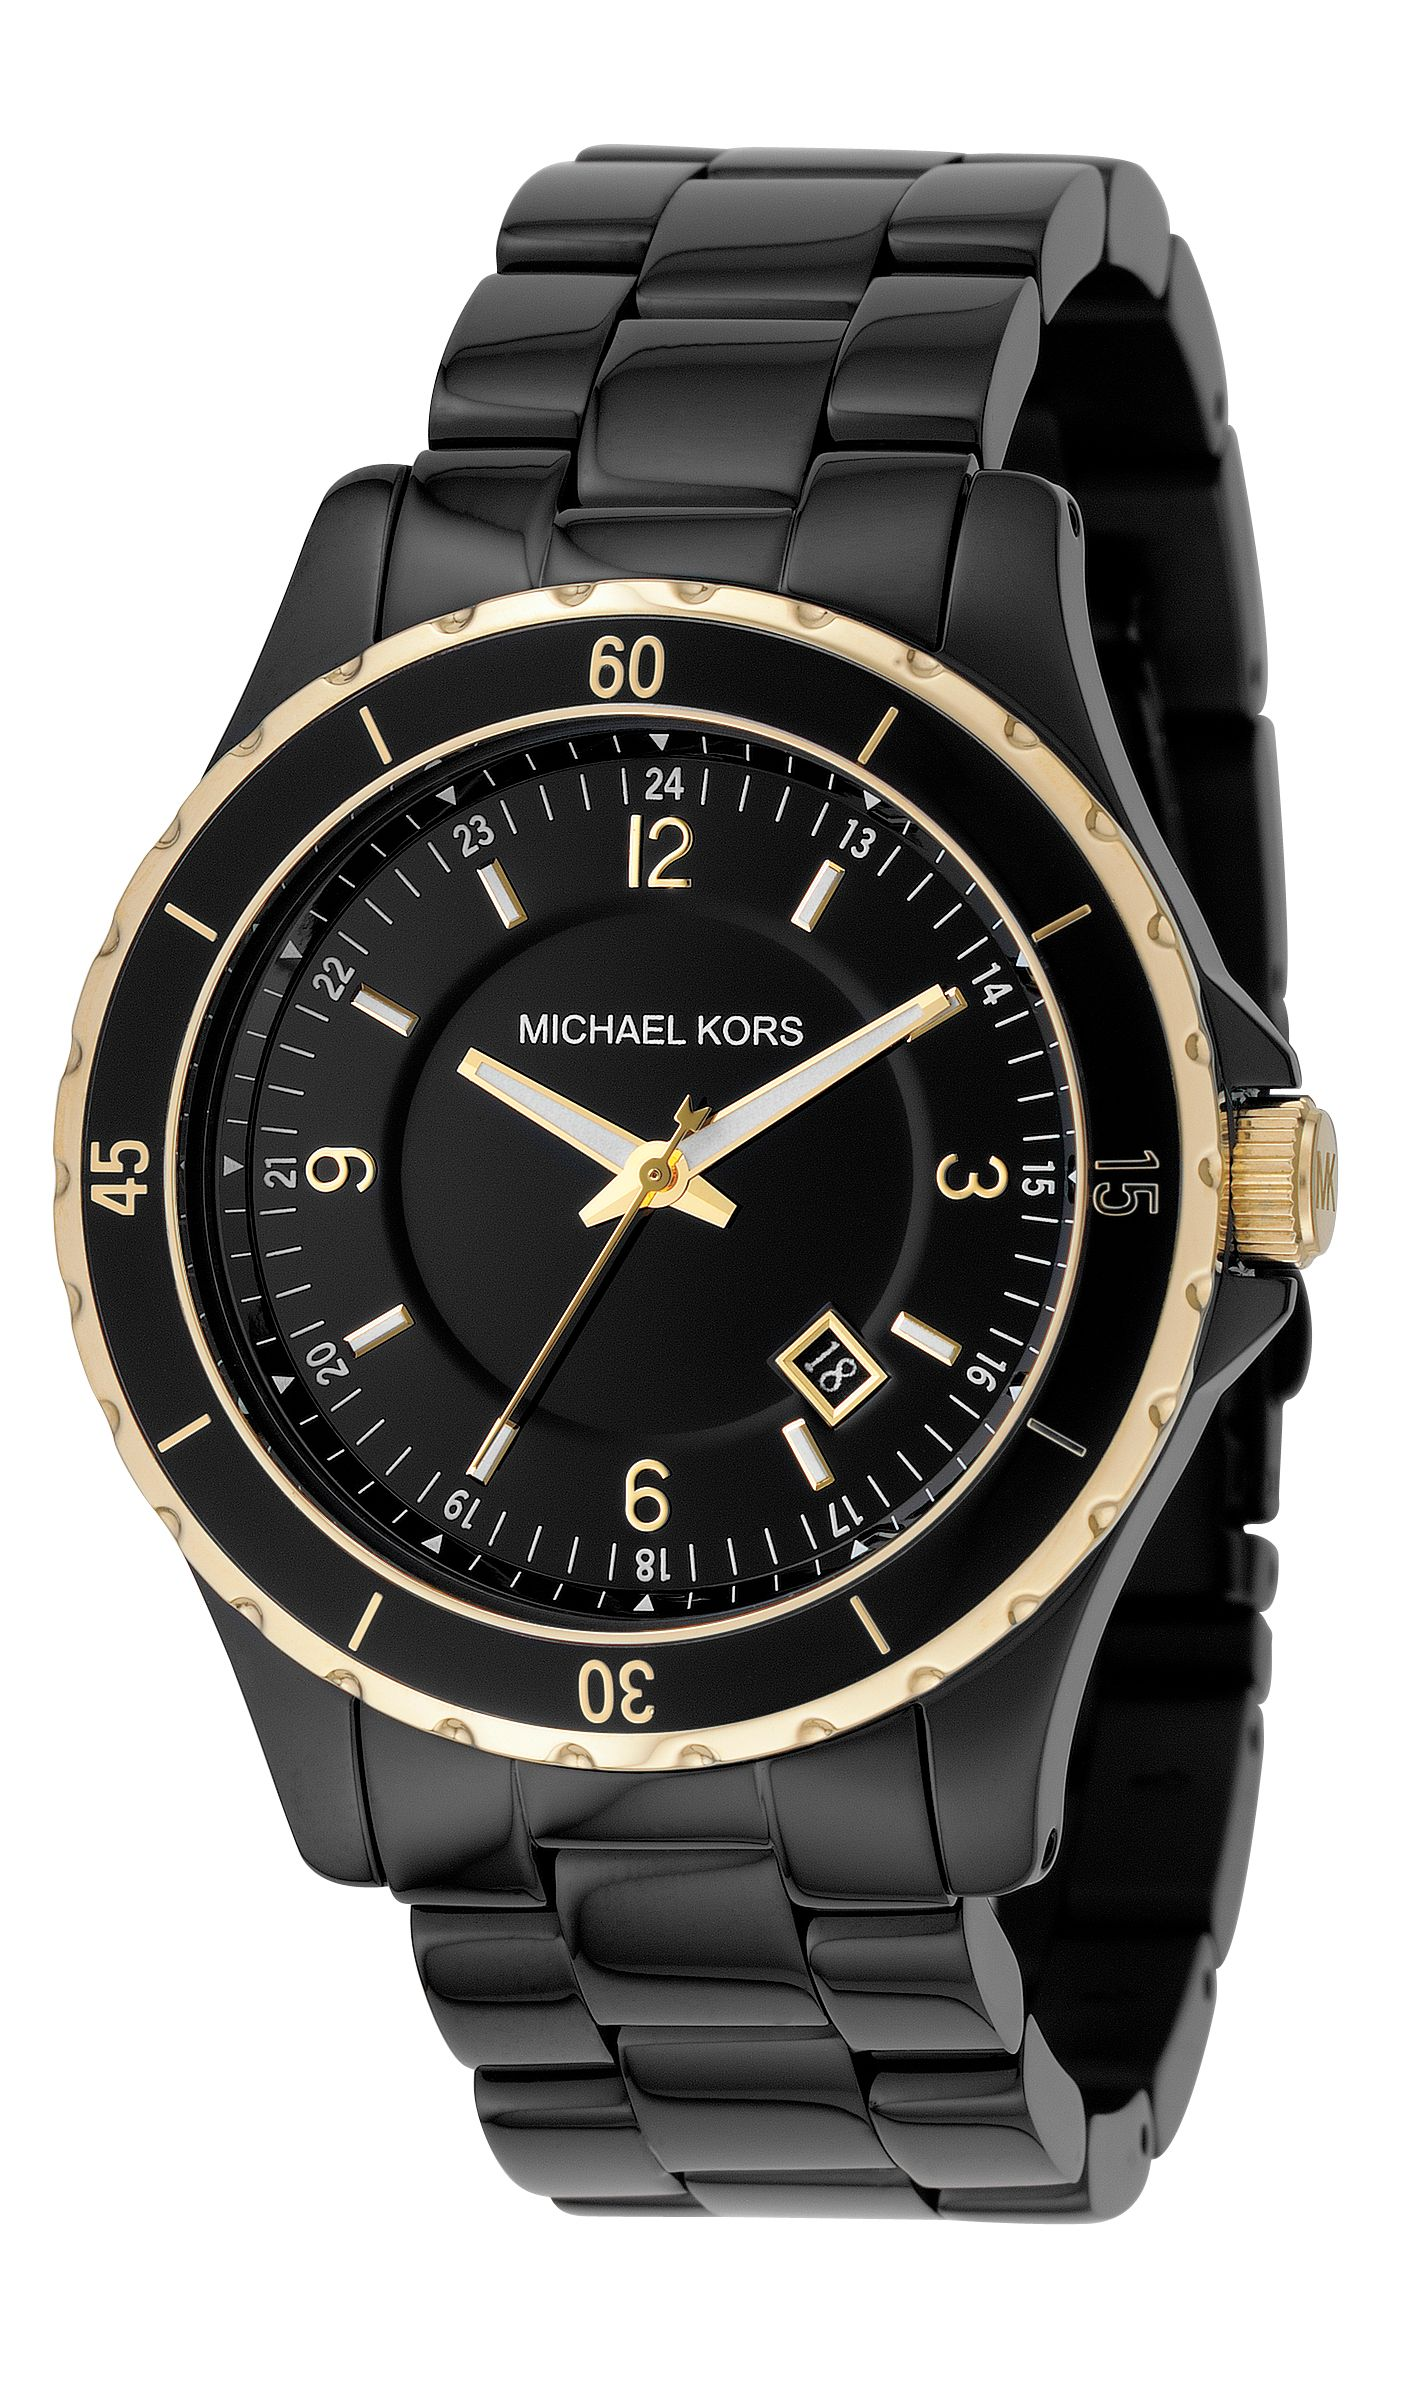 Michael Kors Round case with black dial watch product image